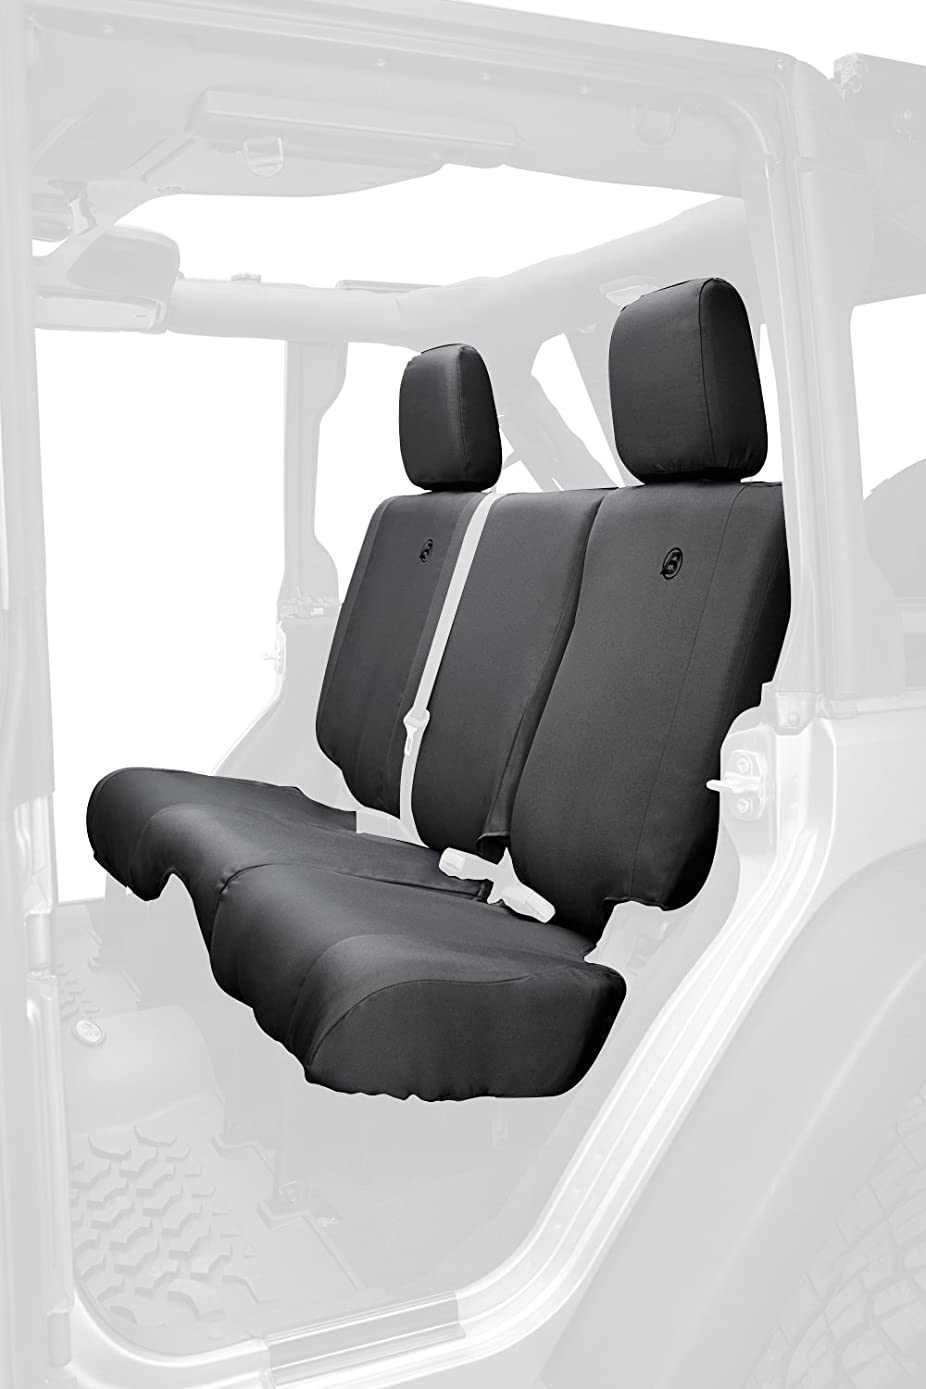 Bestop 29284-35 Black Diamond Rear Seat Cover for 2007 & 2013-2018 Jeep Wrangler Unlimited